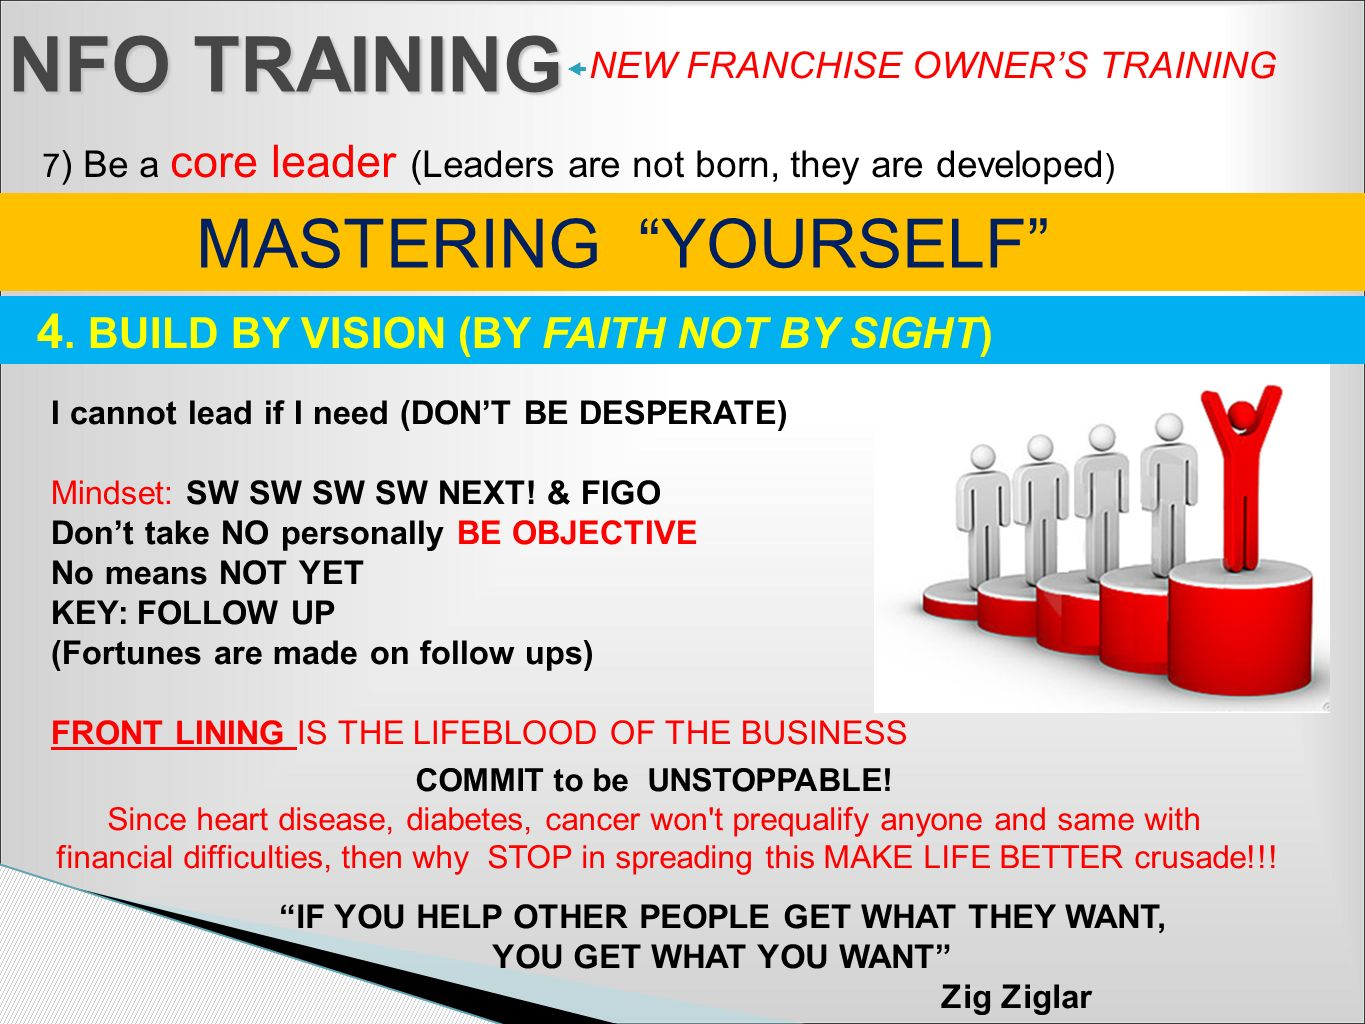 NFO TRAINING NEW FRANCHISE OWNERS TRAINING 7 ) Be a core leader (Leaders are not born, they are developed ) I cannot lead if I need (DONT BE DESPERATE